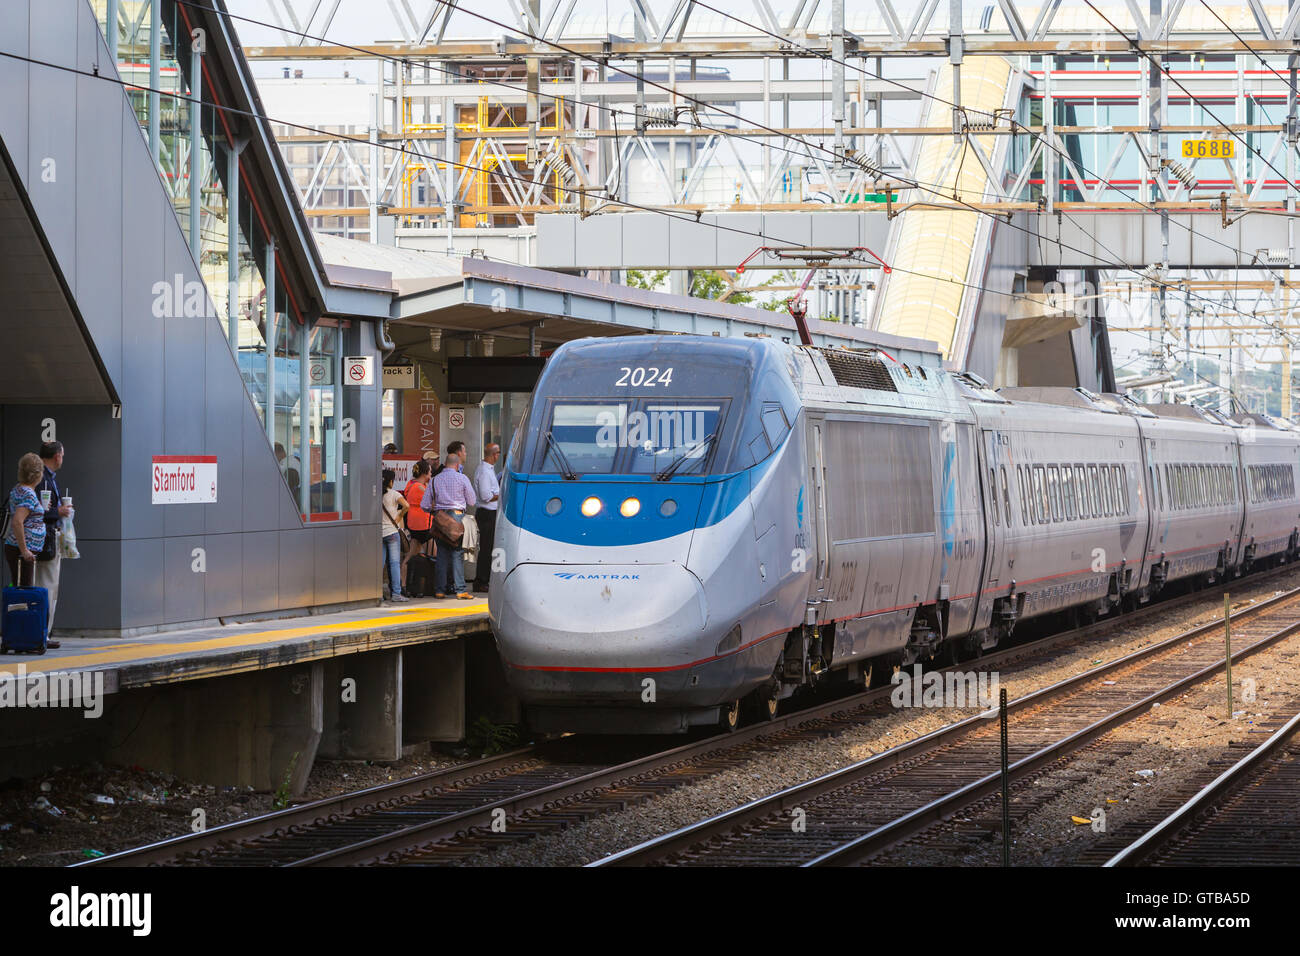 Passengers board a southbound Amtrak Acela Express train in Stamford, Connecticut. - Stock Image